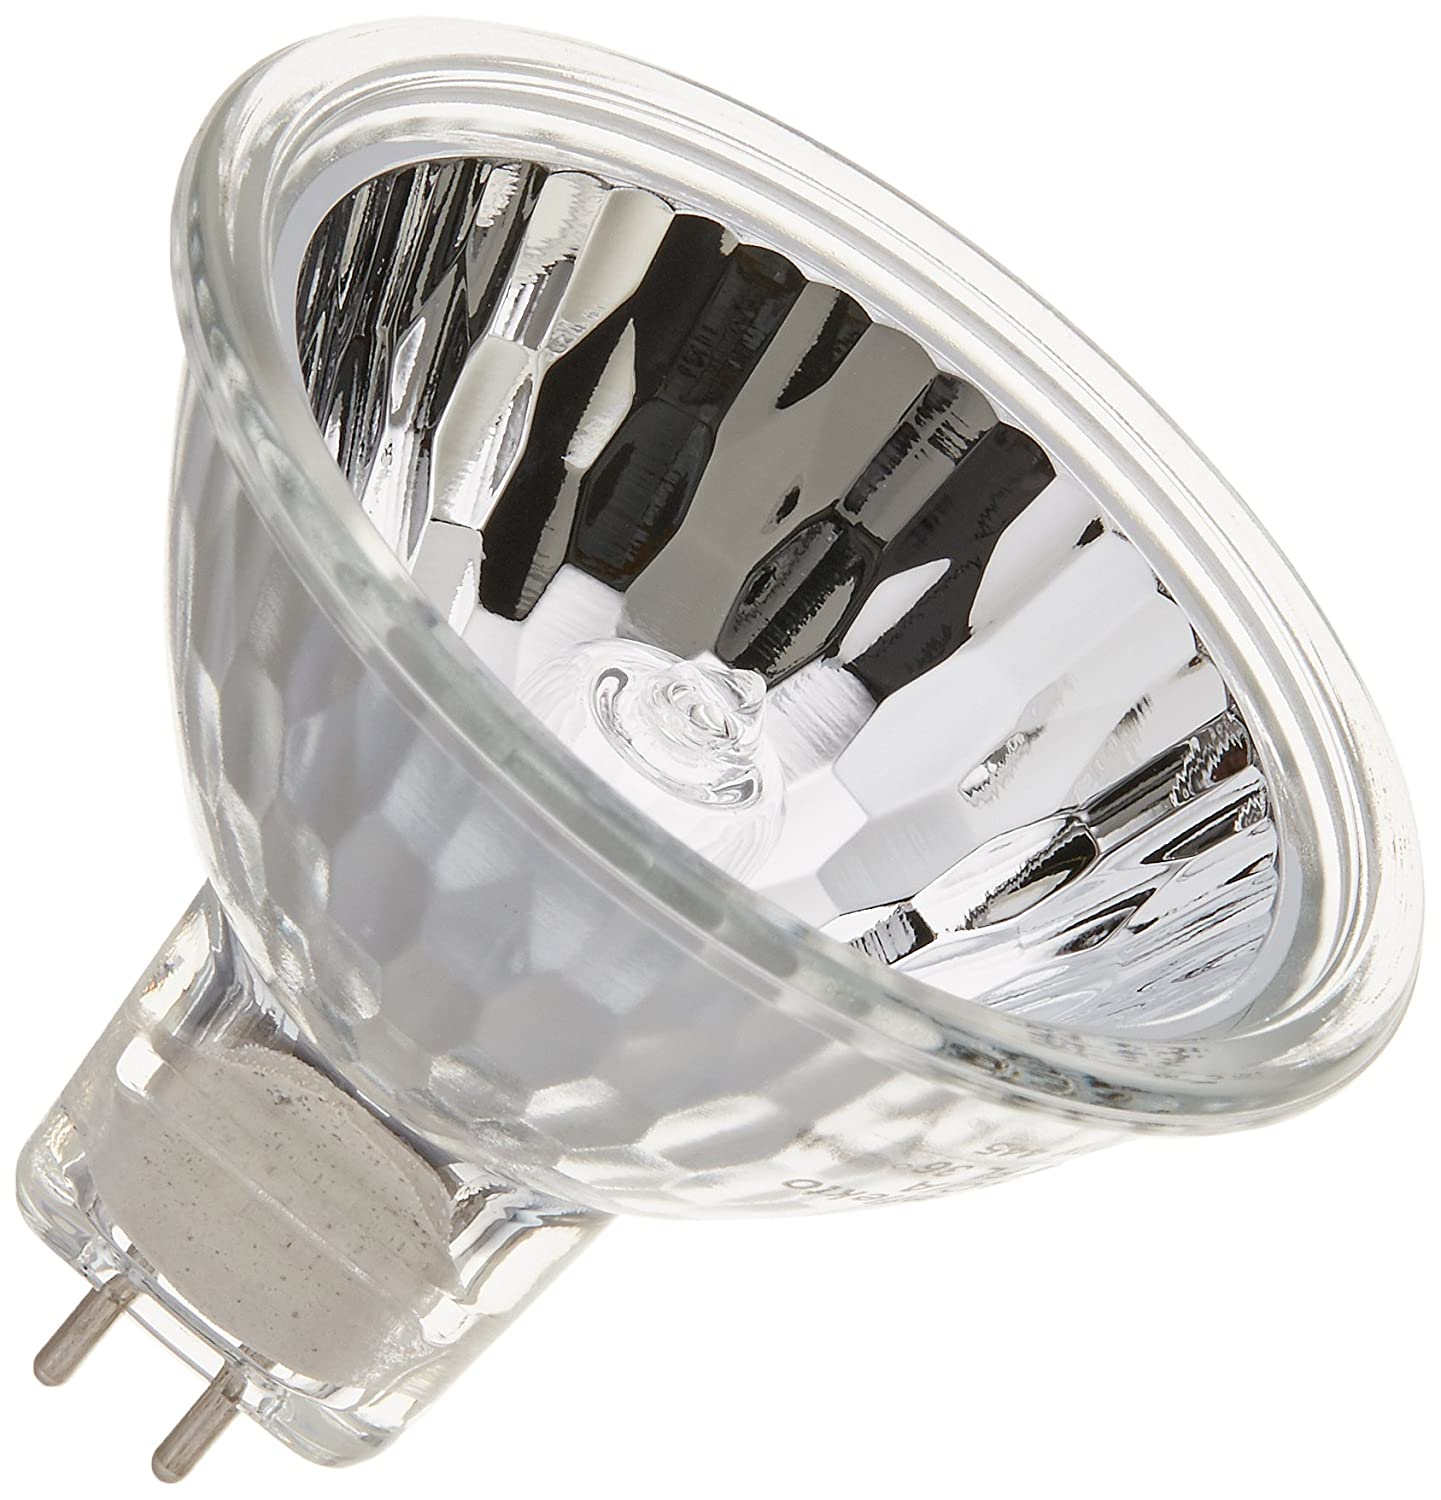 Ushio BC6244 1000009 20W Halogen Light Bulb MR16 Eurostar Reflekto BAB Flood Open Face 3 500 Life Hours 12V